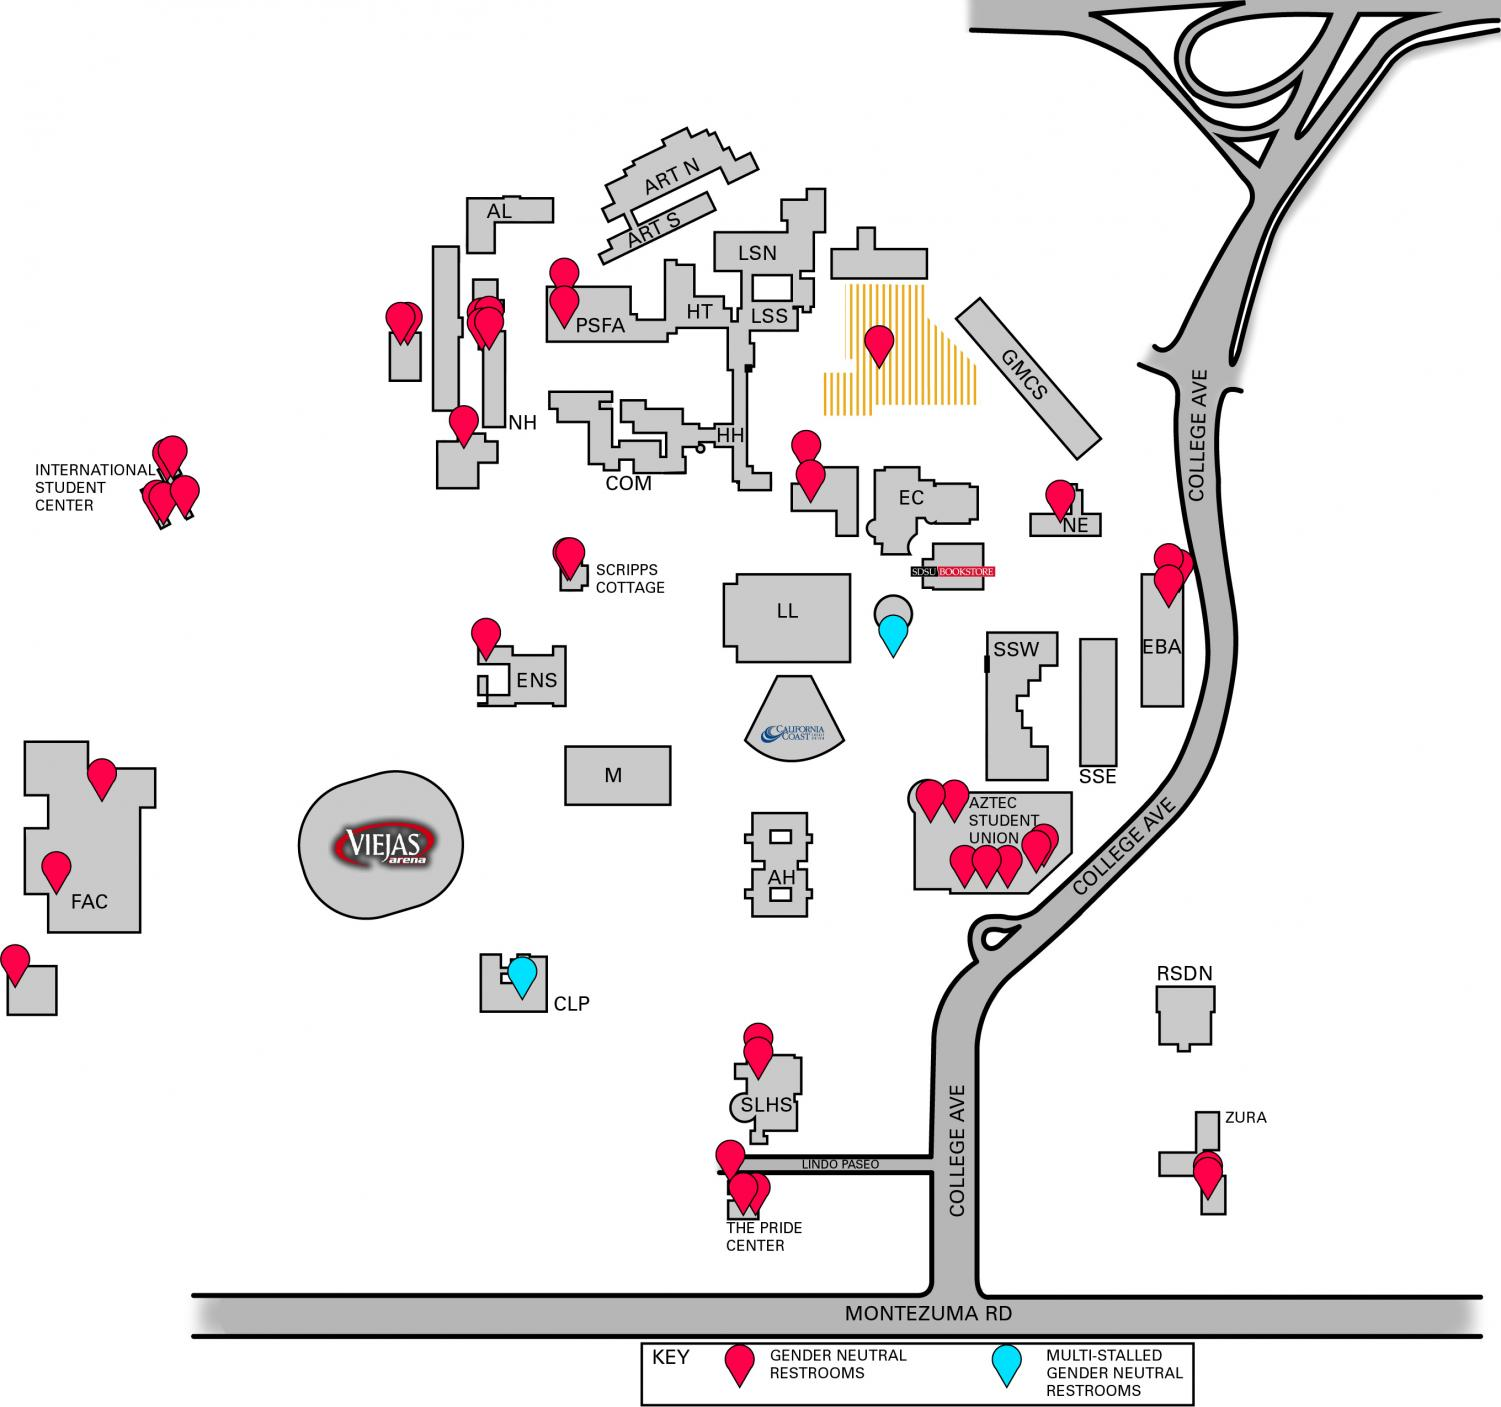 This graphic shows all 32 of the gender neutral bathrooms on campus with three of them being multiple stalls and the others being singles.